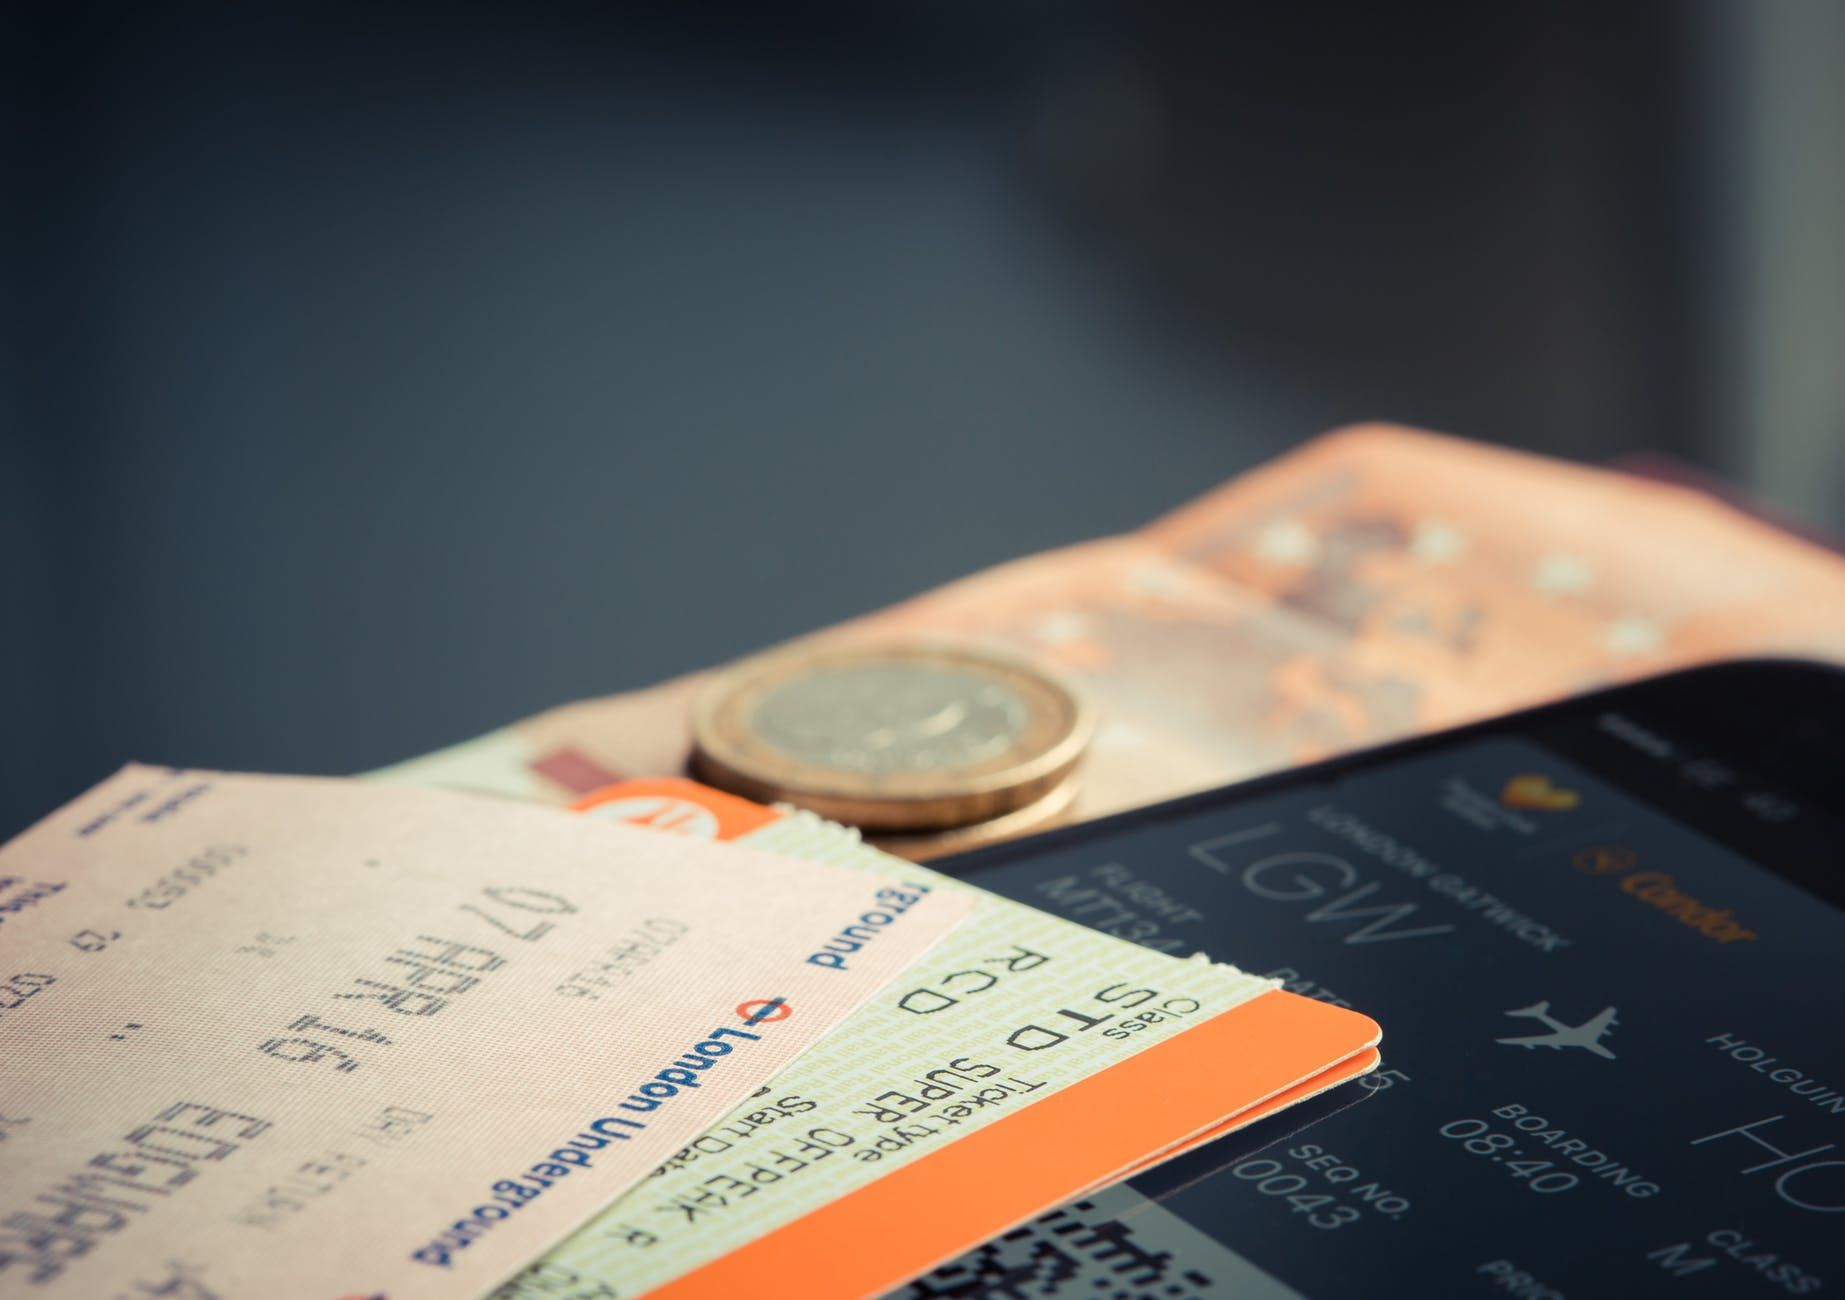 Want to know about how to Secure your travel documents? To know more, check out our blog and find ways to safeguard your Travel Documents.